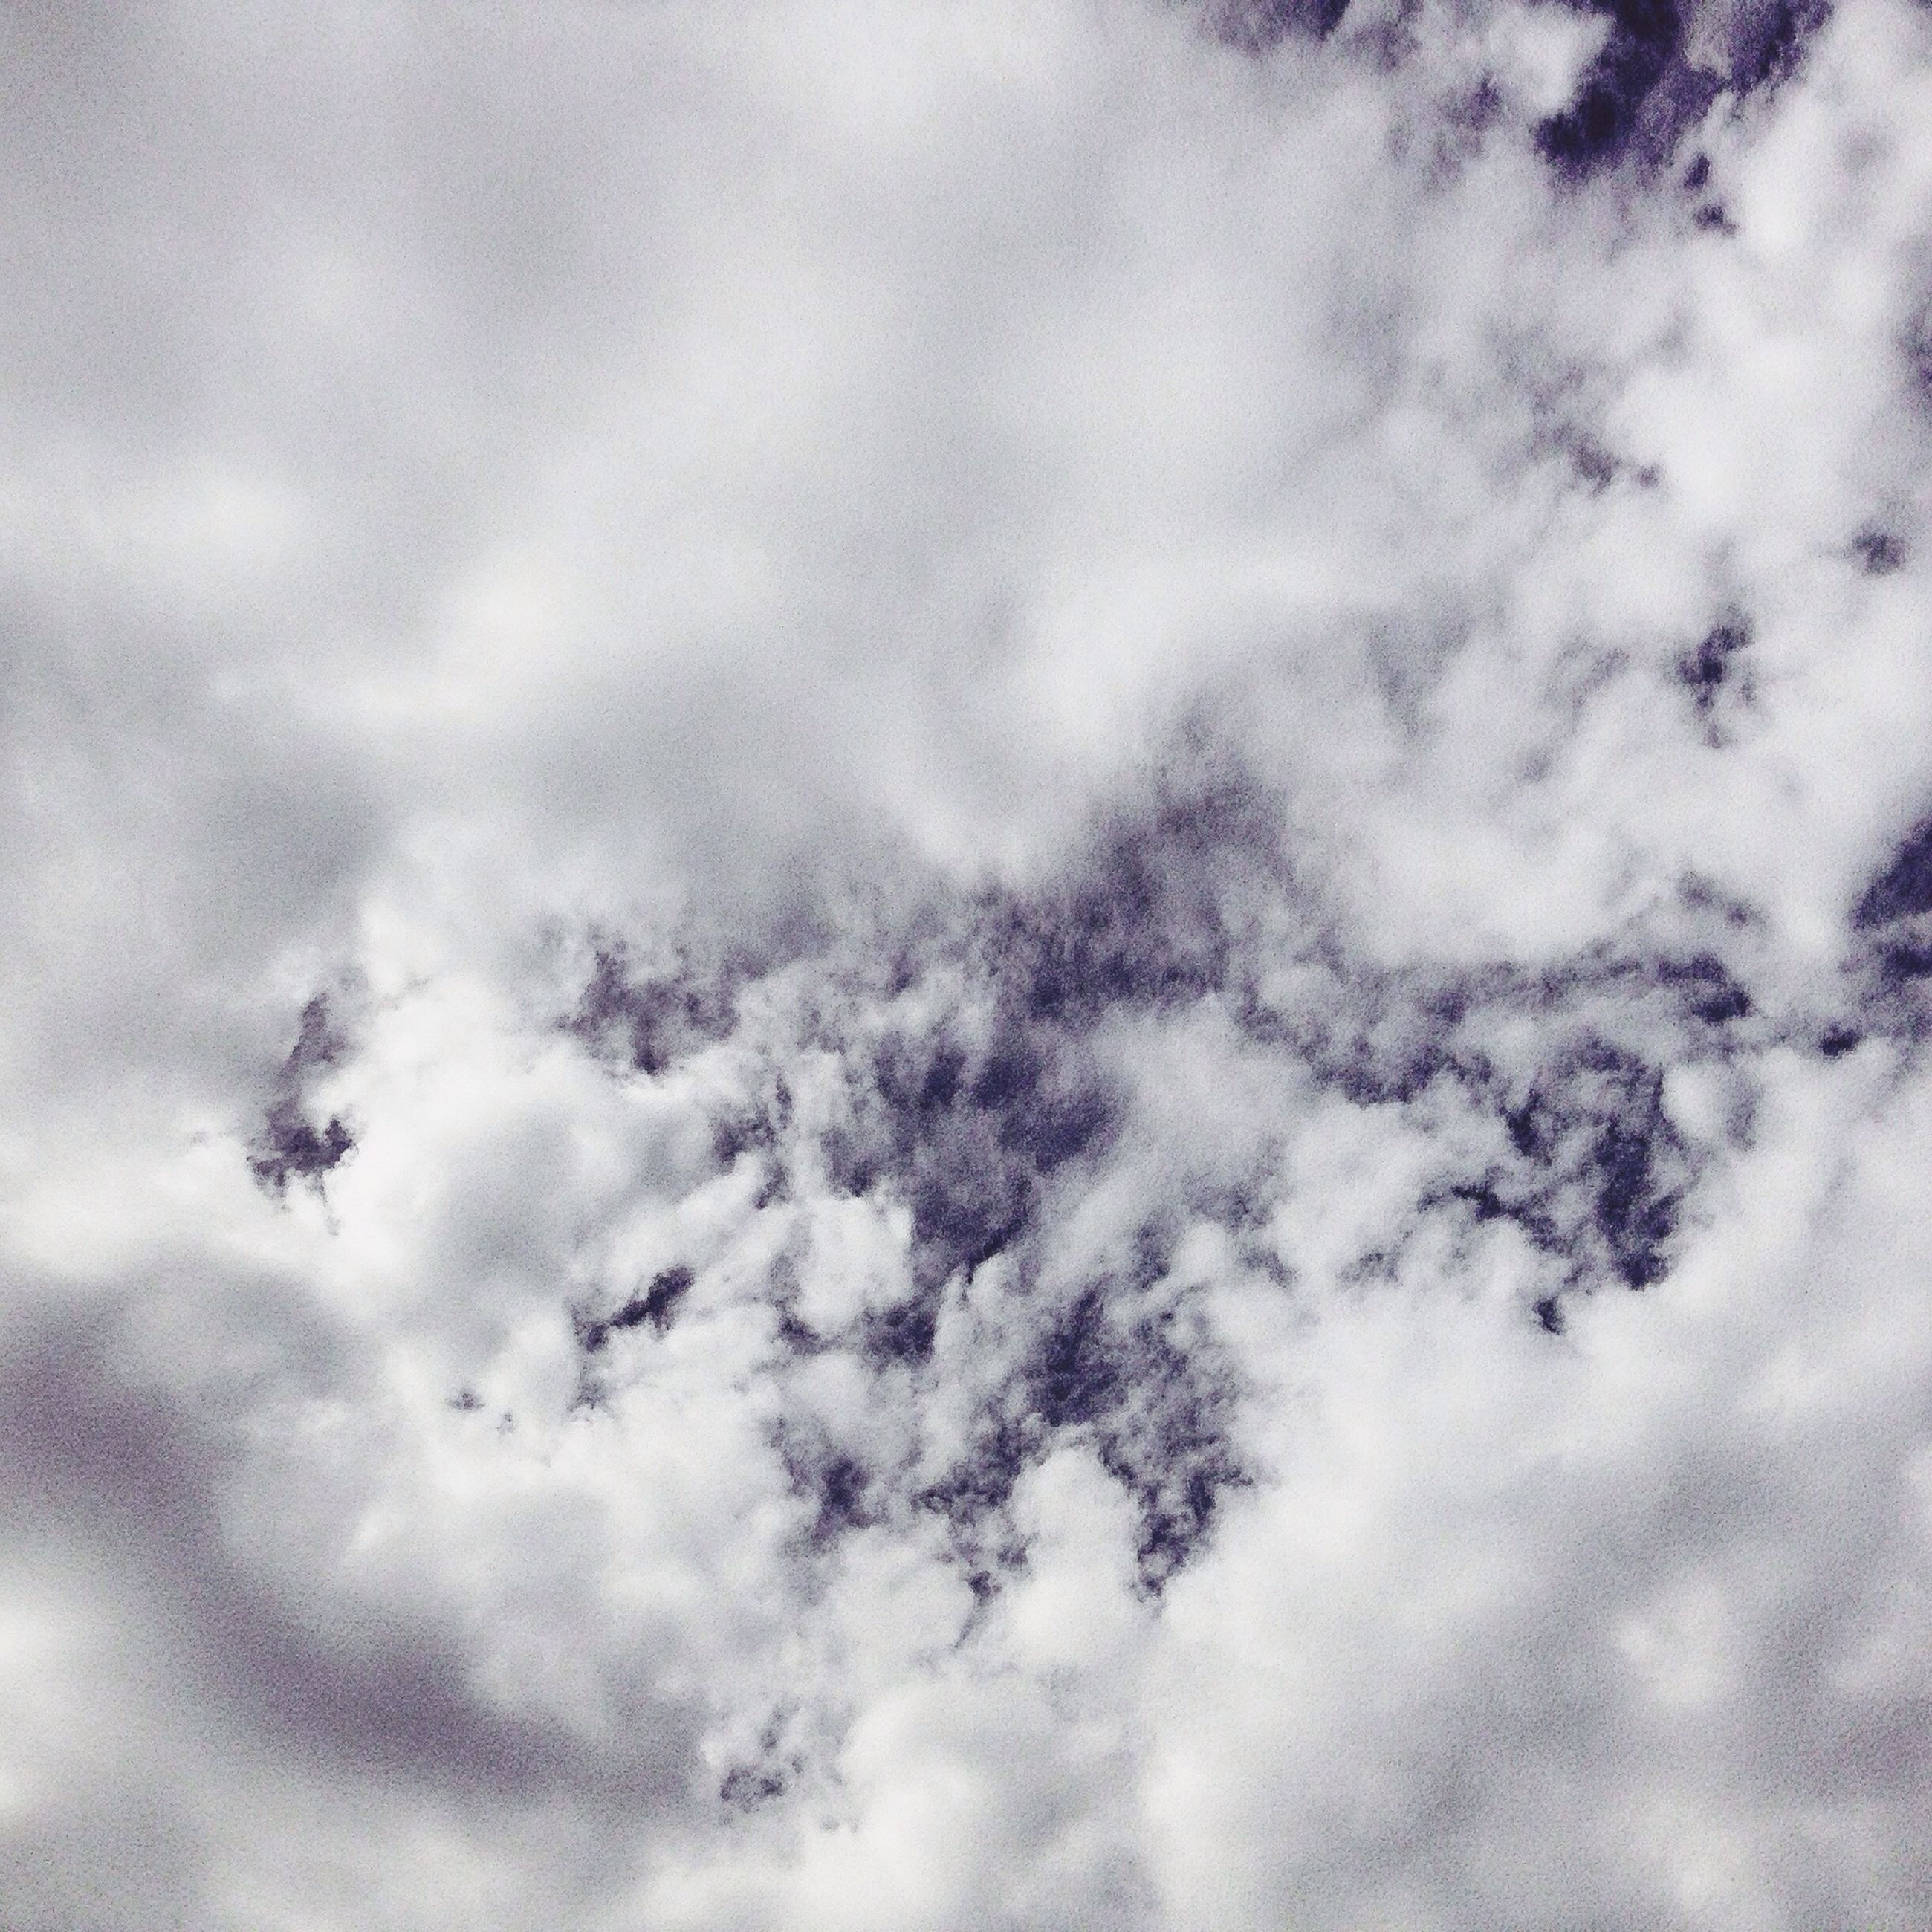 cloud - sky, sky, low angle view, cloudy, weather, nature, cloudscape, beauty in nature, cloud, tranquility, overcast, backgrounds, full frame, scenics, sky only, day, outdoors, tranquil scene, no people, white color